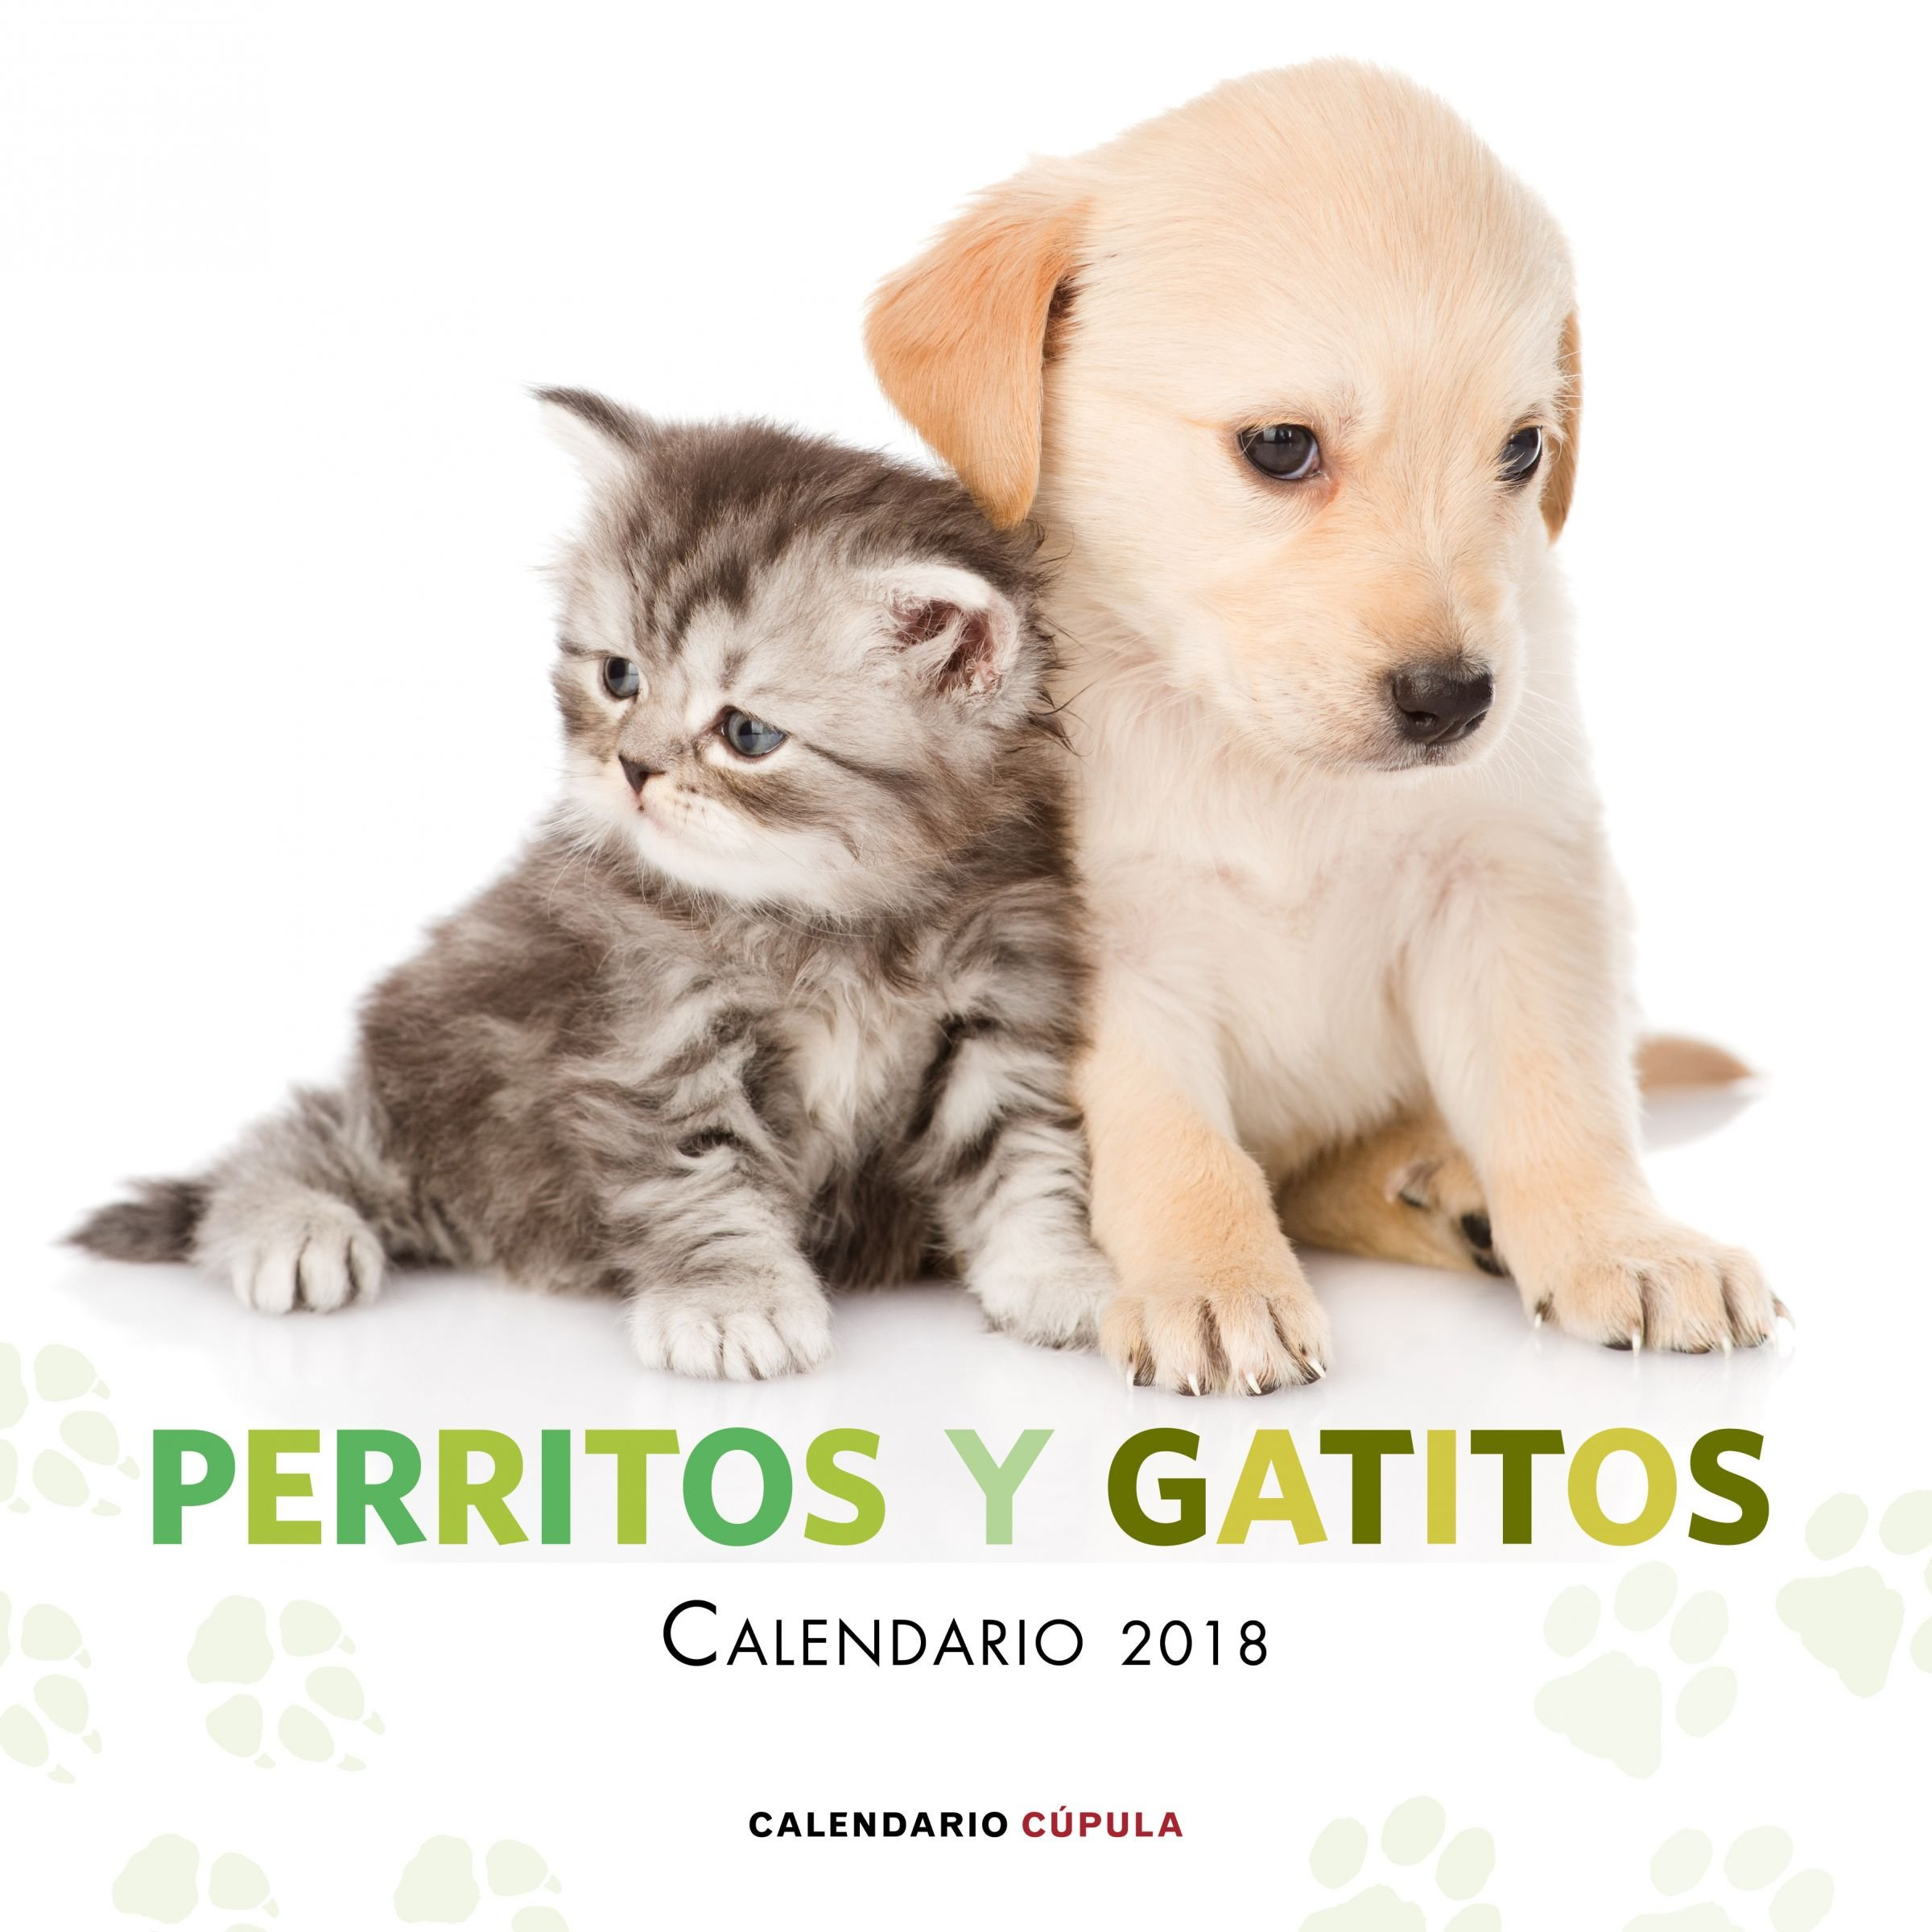 Calendario Perritos y gatitos 2018 Calendarios y agendas: Amazon.es: AA. VV.: Libros